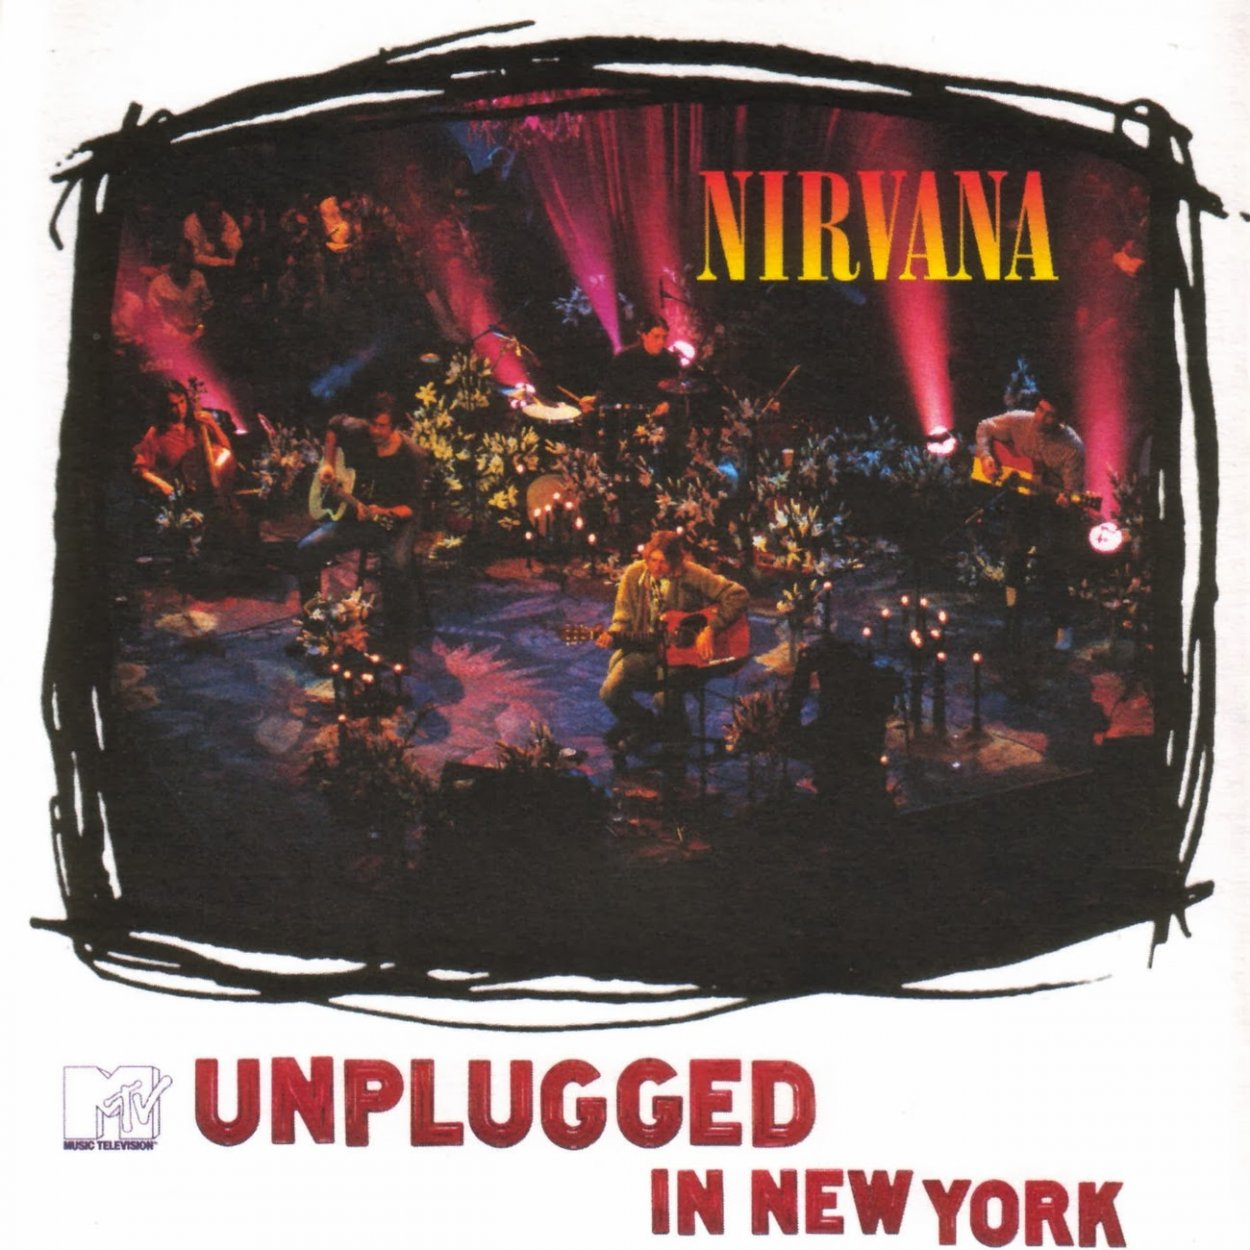 A white background gives way to a loose rectangle where we see Nirvana on stage with a number of players behind them in a small performance space.